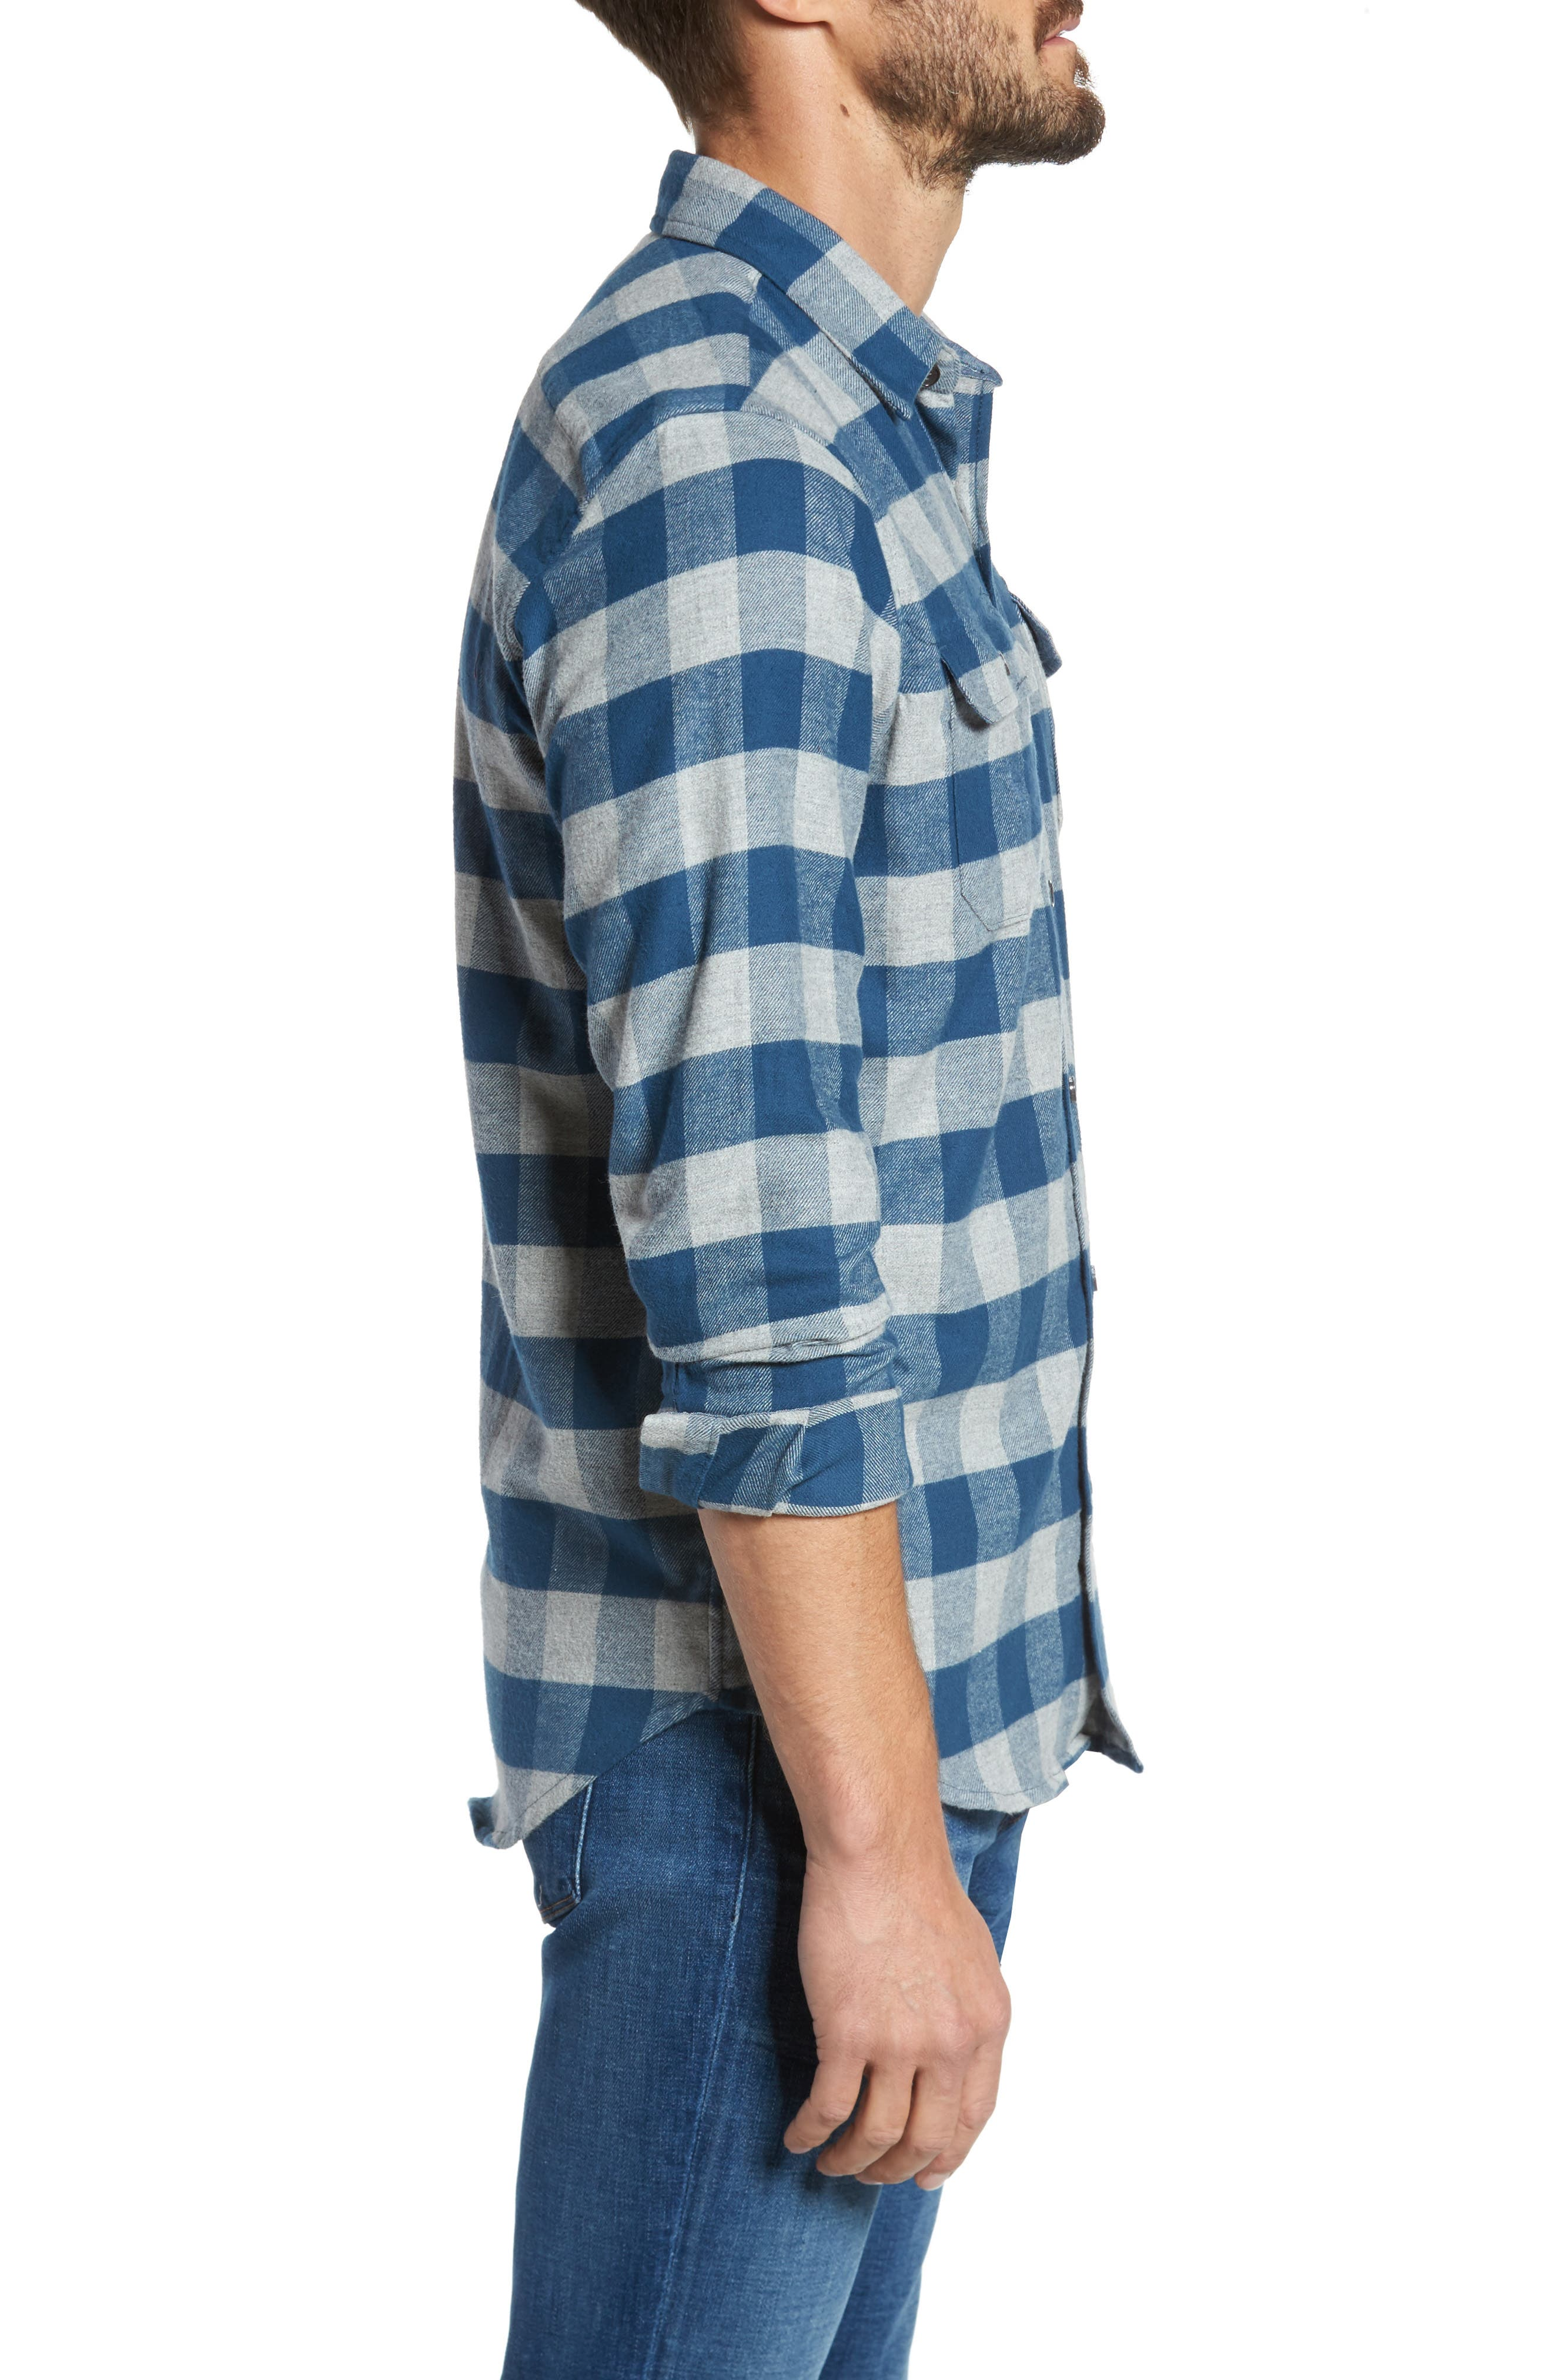 Buffalo Check Flannel Shirt,                             Alternate thumbnail 3, color,                             Teal/ Med Grey Heather